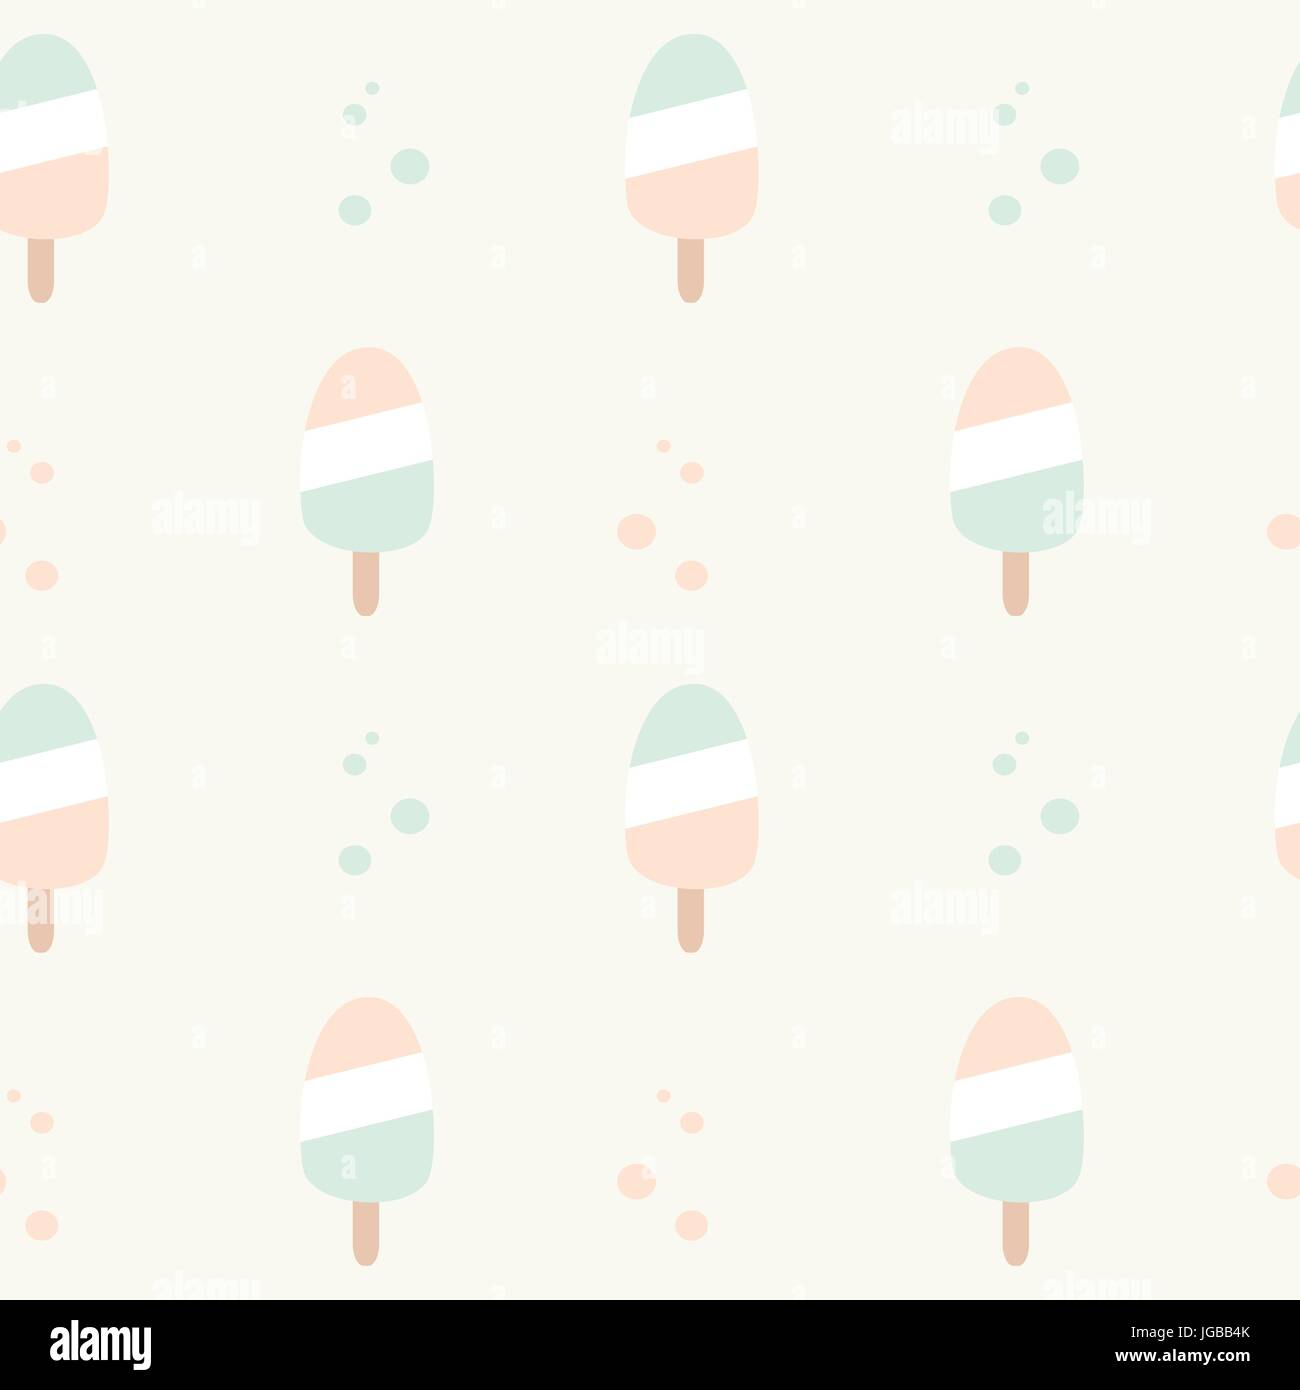 Cute Pastel Colors Ice Cream Seamless Vector Pattern Background Stock Vector Image Art Alamy